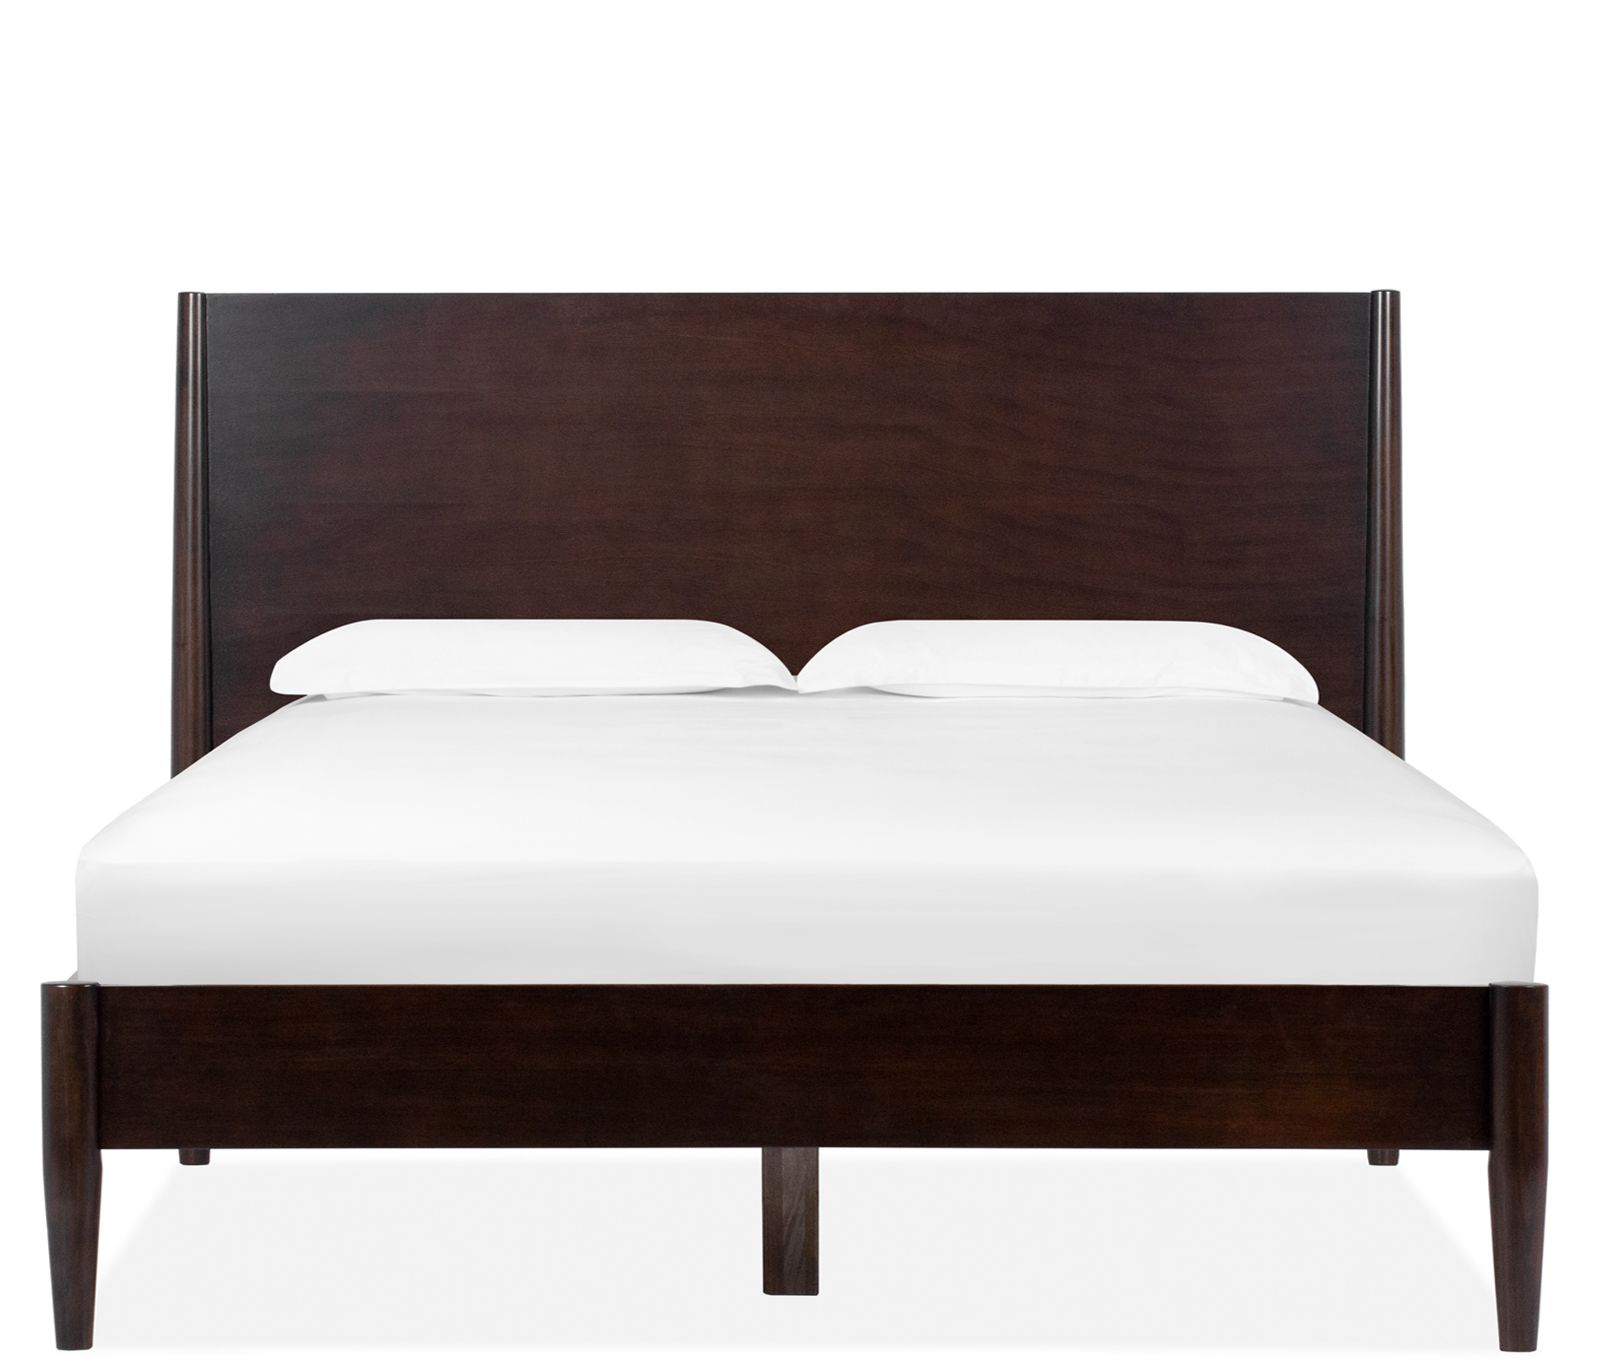 Eastlake King Bed intended for Modern Bedroom Bedding